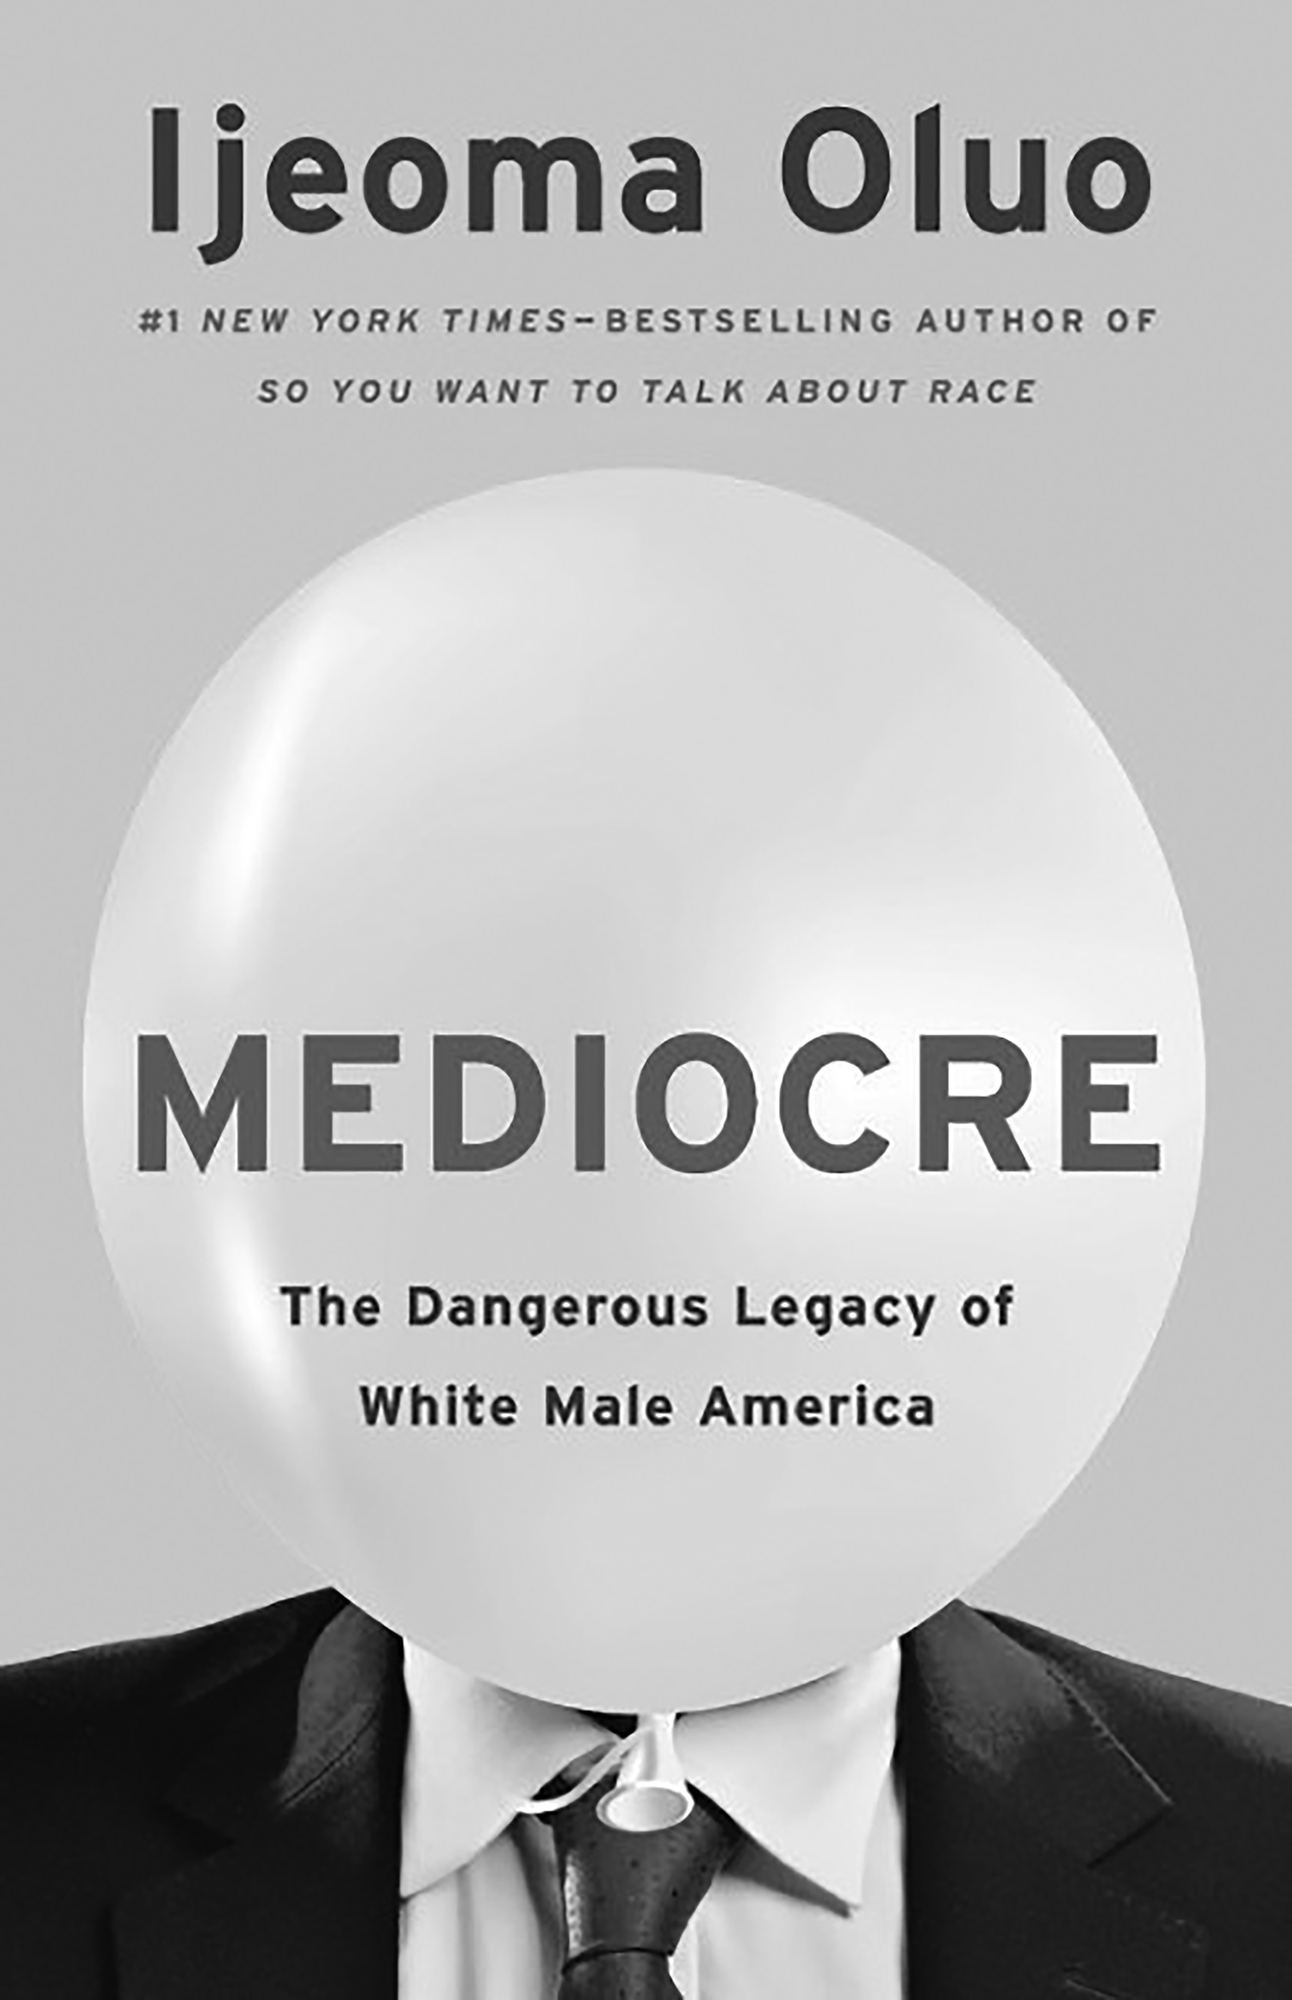 """Book cover for Mediocre: The Dangerous Legacy of White Male America by Ijeoma Oluo. It's a grayscale image of a person in a suit whose head has been replaced by a balloon. On top of the balloon reads """"Mediocre / The Dangerous Legacy of White Male America"""" and above the balloon reads """"Ijeoma Oluo / #1 New York Times-Bestselling Author of So You Want to Talk About Race."""""""